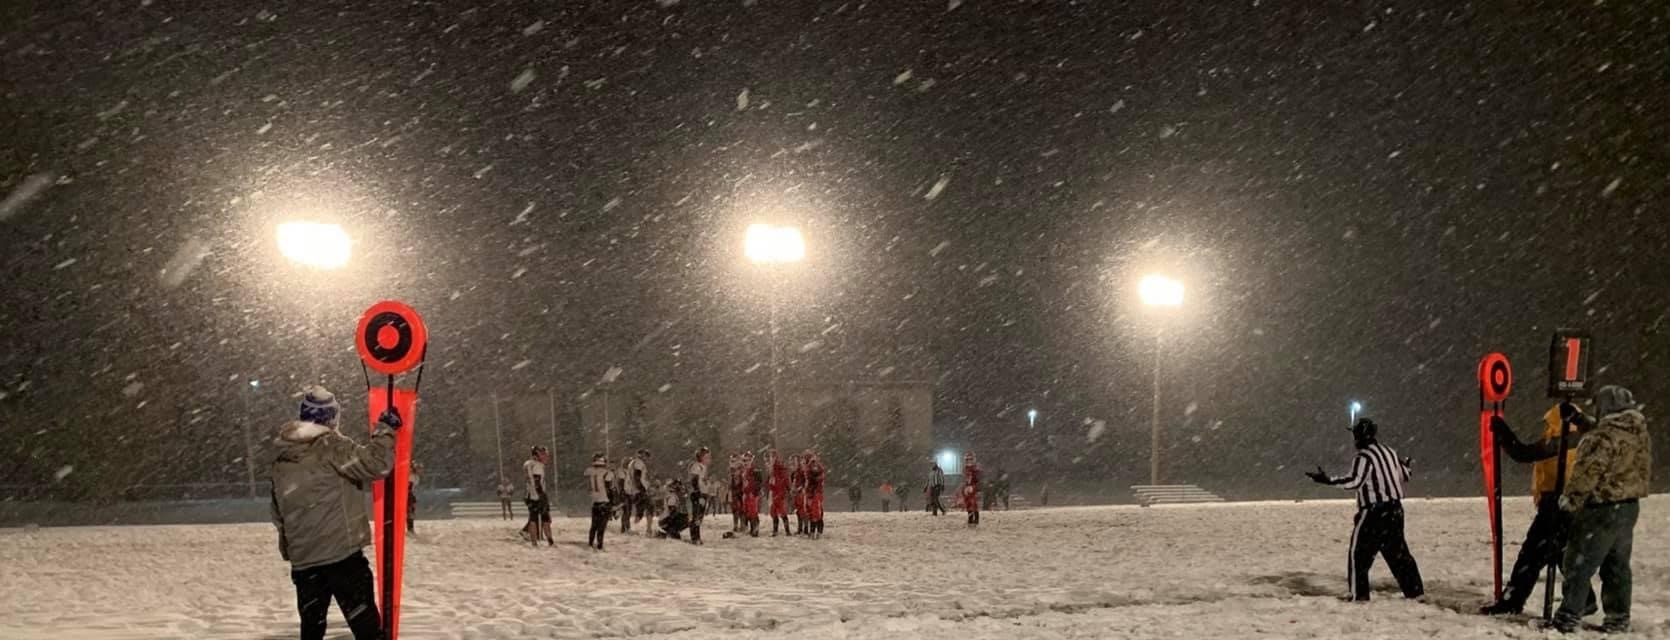 Friday night football in a snow storm